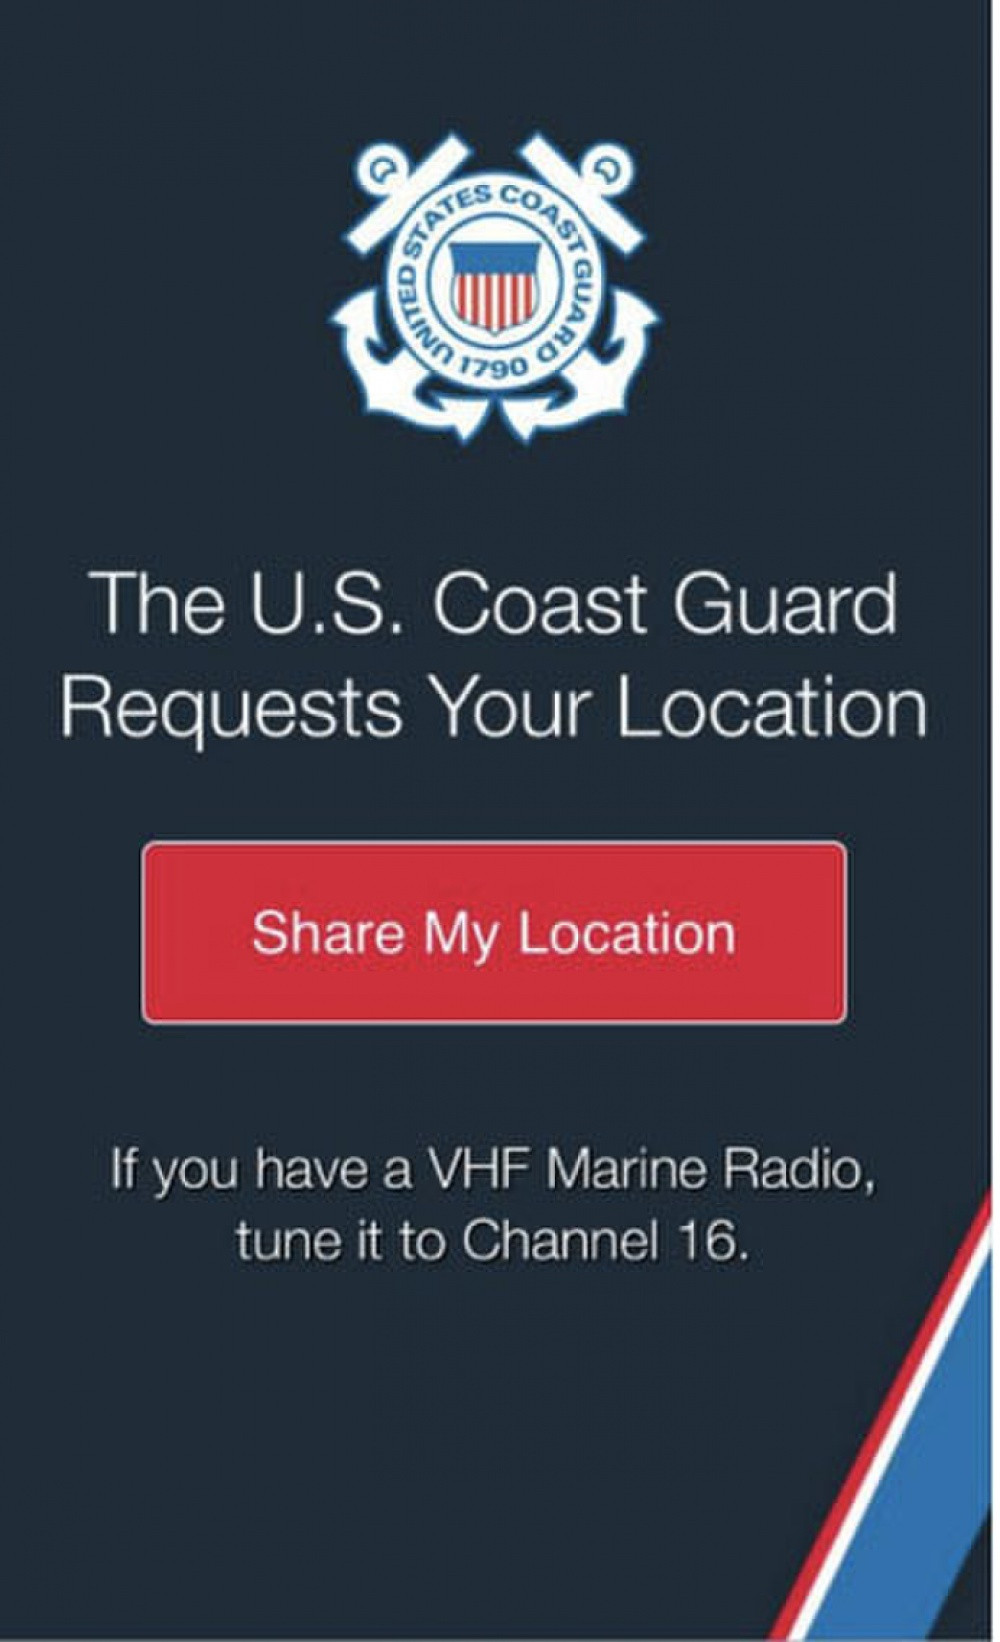 USCG website with Share My Location button.